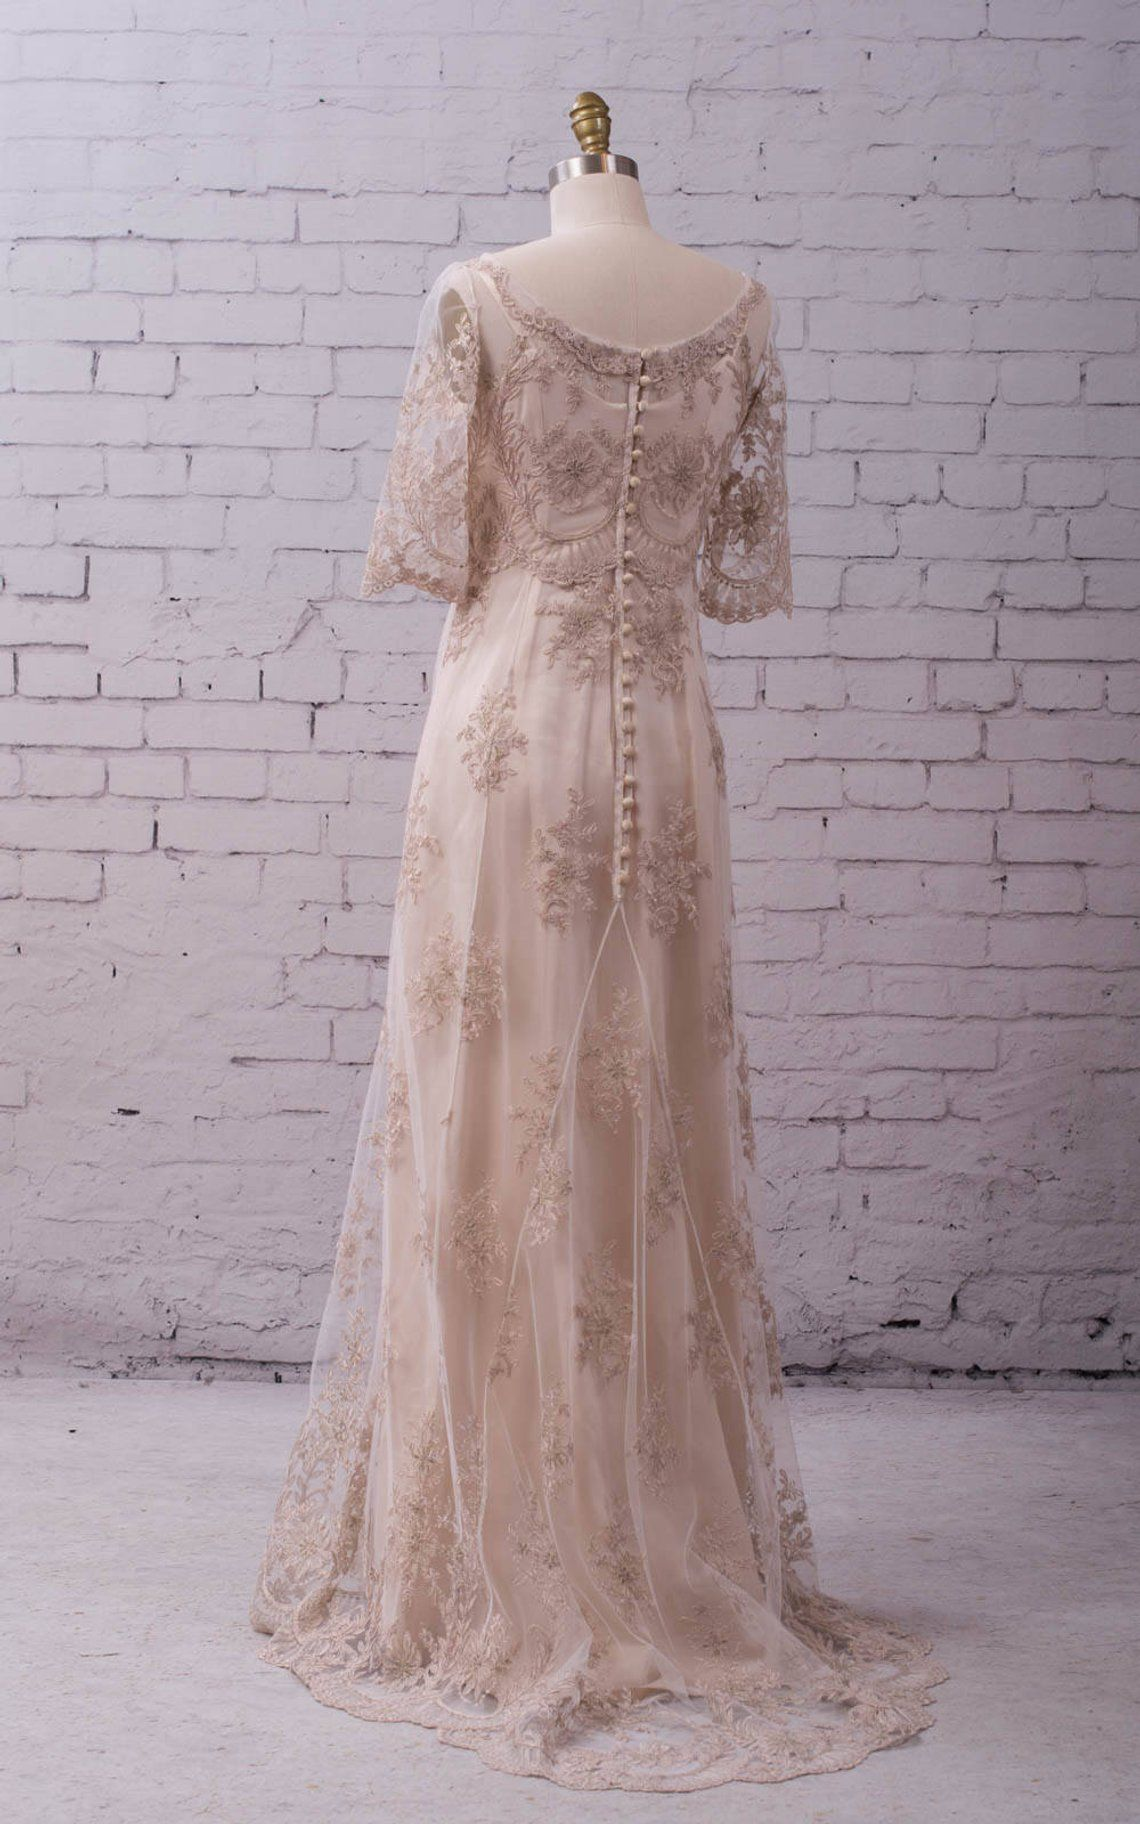 Lace Wedding Gown Wedding Dress With Sleeves Buttons Up Back